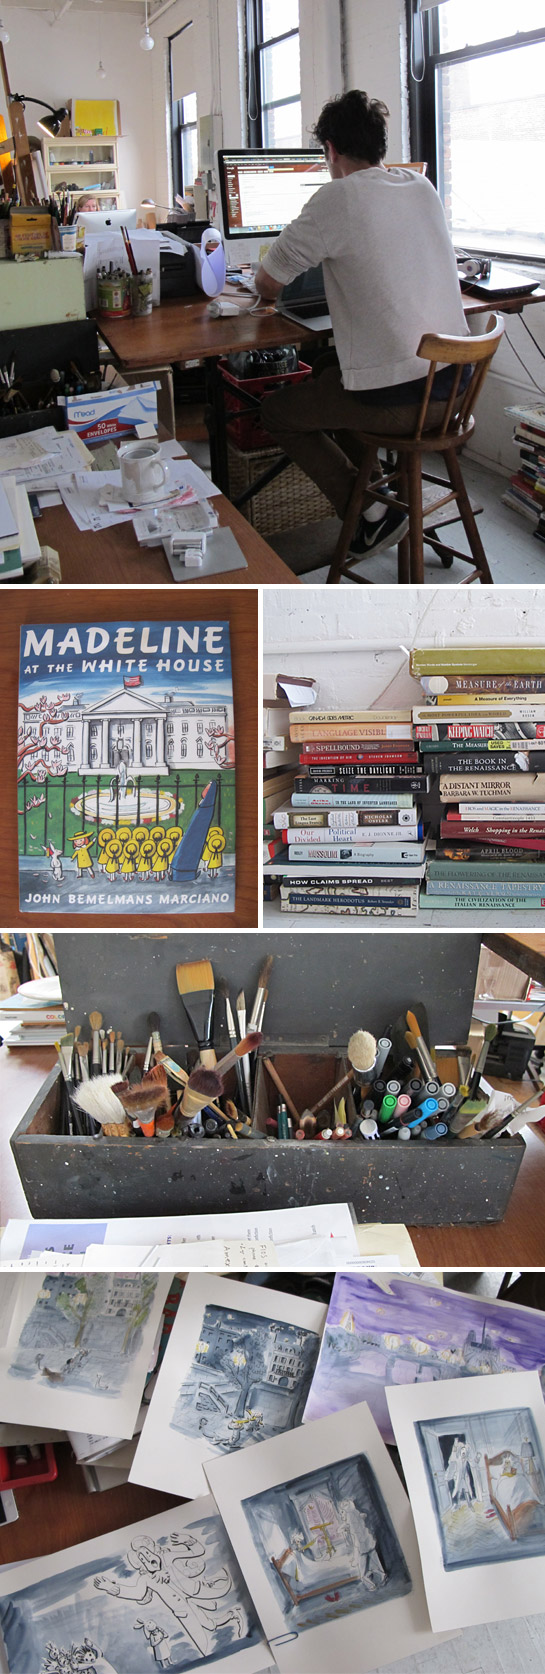 "JOHN BEMELMANS MARCIANO'S WORK SPACE. From top: Johnny at his desk; A recent Madeline; Piles of book for research; lots of brushes; Potential finals for JBM's upcoming book, Madeline and the Old House in Paris.""Most books I've probably done have one or two night scenes and this entire book takes place at night so I'm like, how do you do everything that's at night and not make it always look the same? So I was trying different colors and line work."""